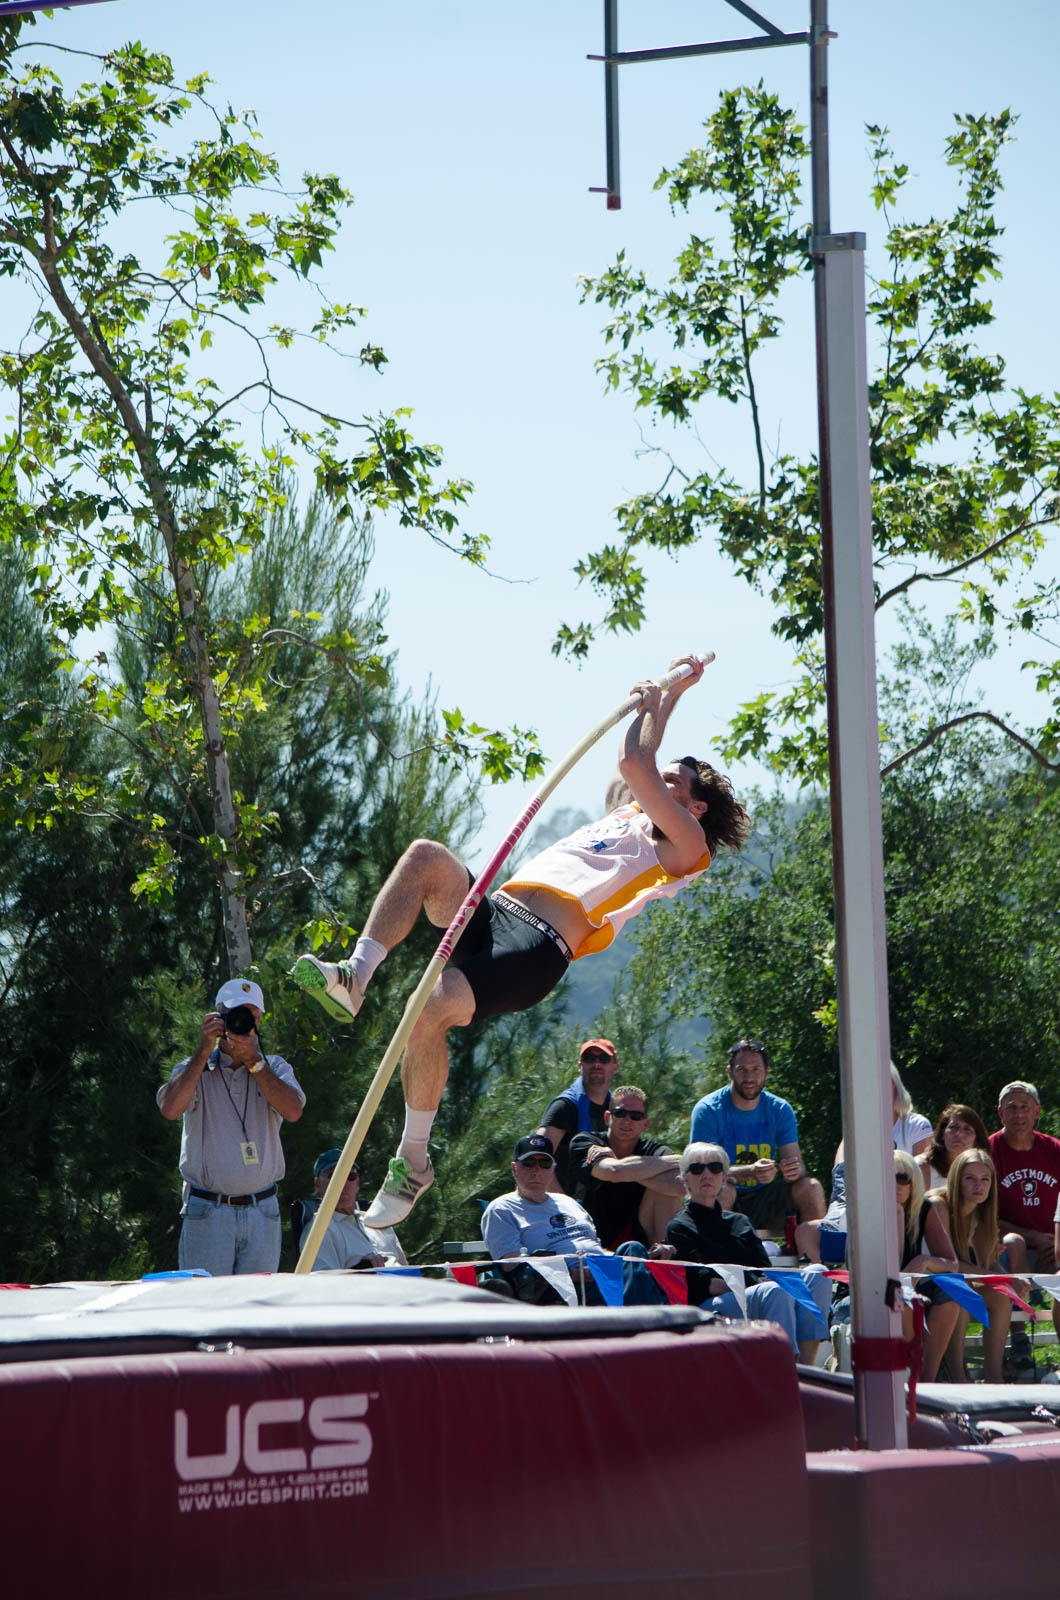 During the decathlon, Tyler Nelson competes in pole vaulting. Christina DeMarzo / Daily Nexus